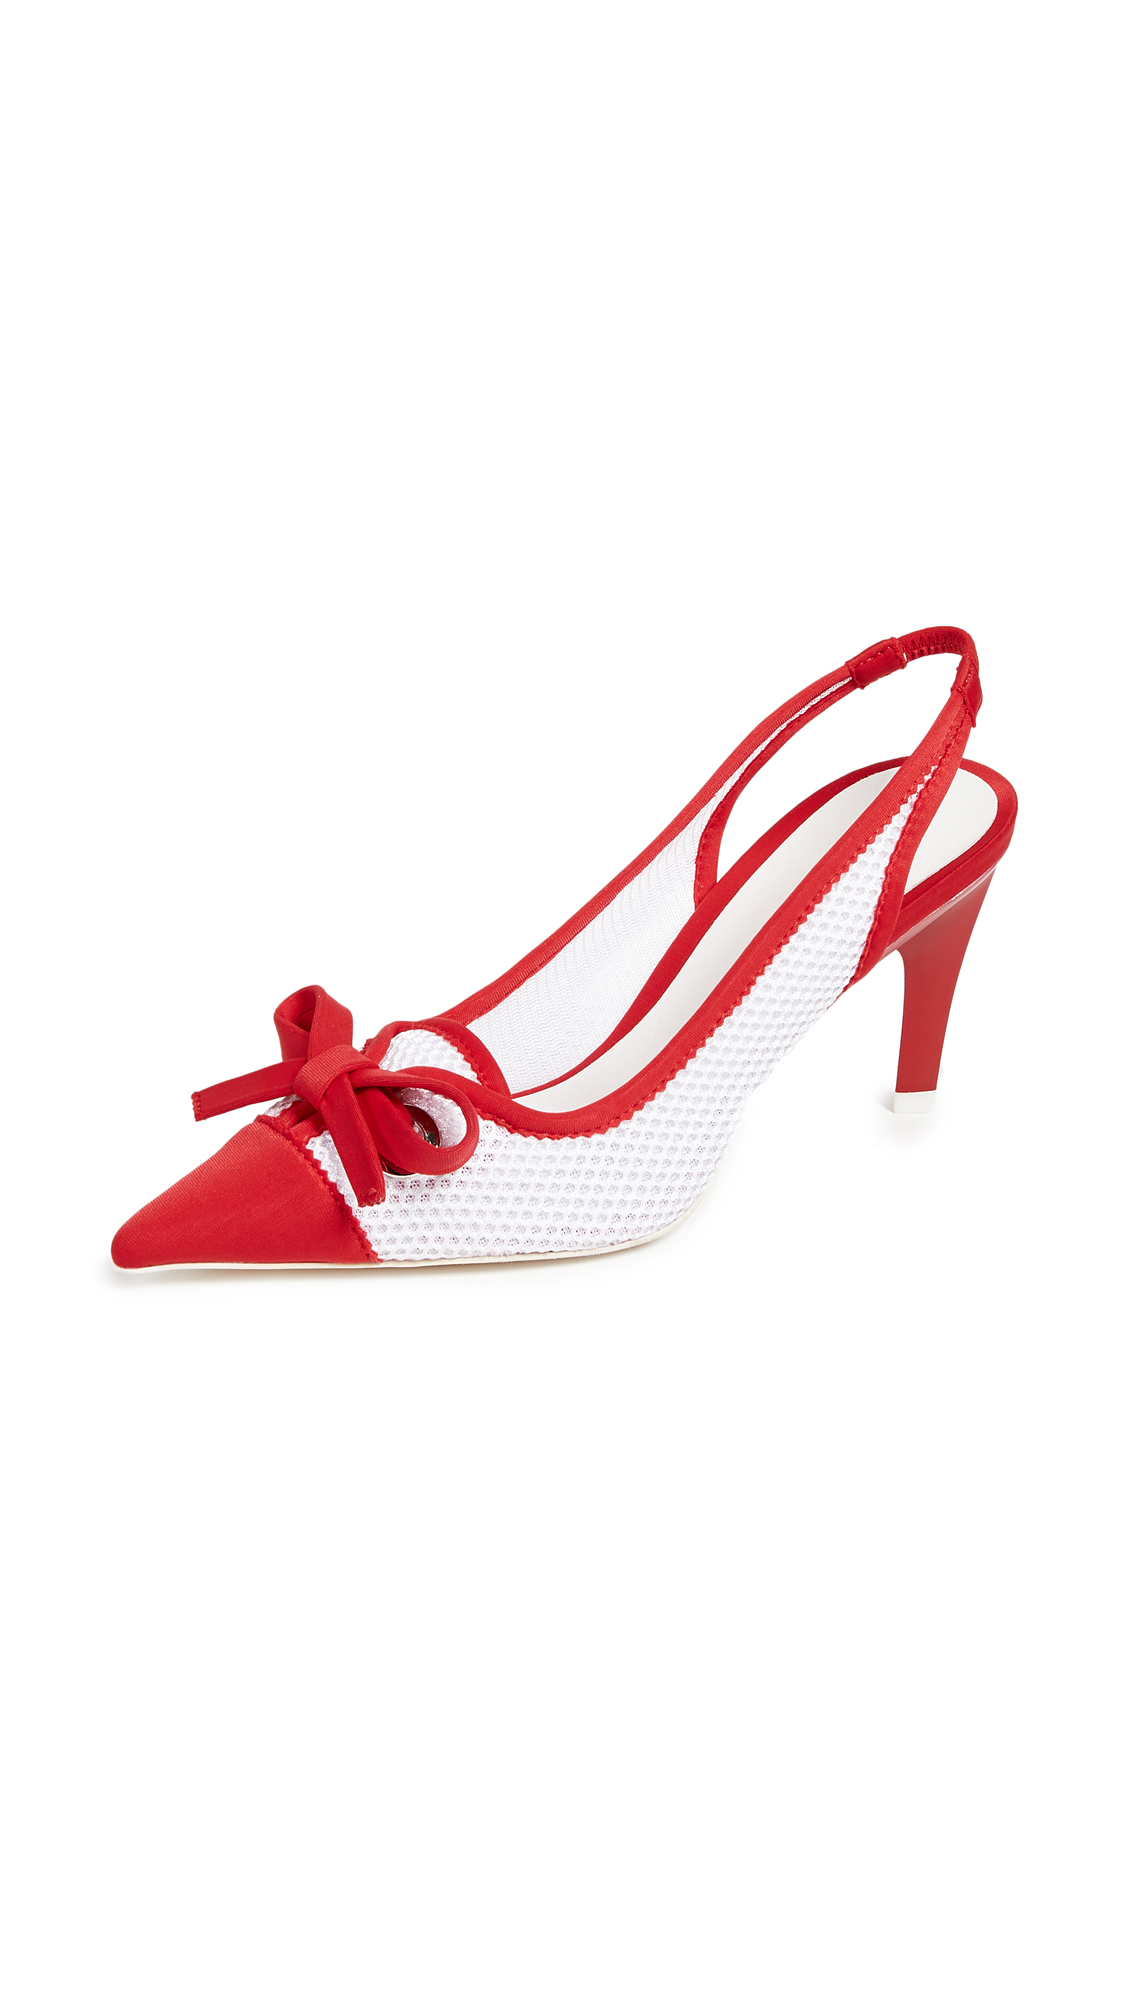 Jeffrey Campbell Cecily Point Toe Slingback Pumps - Red/White